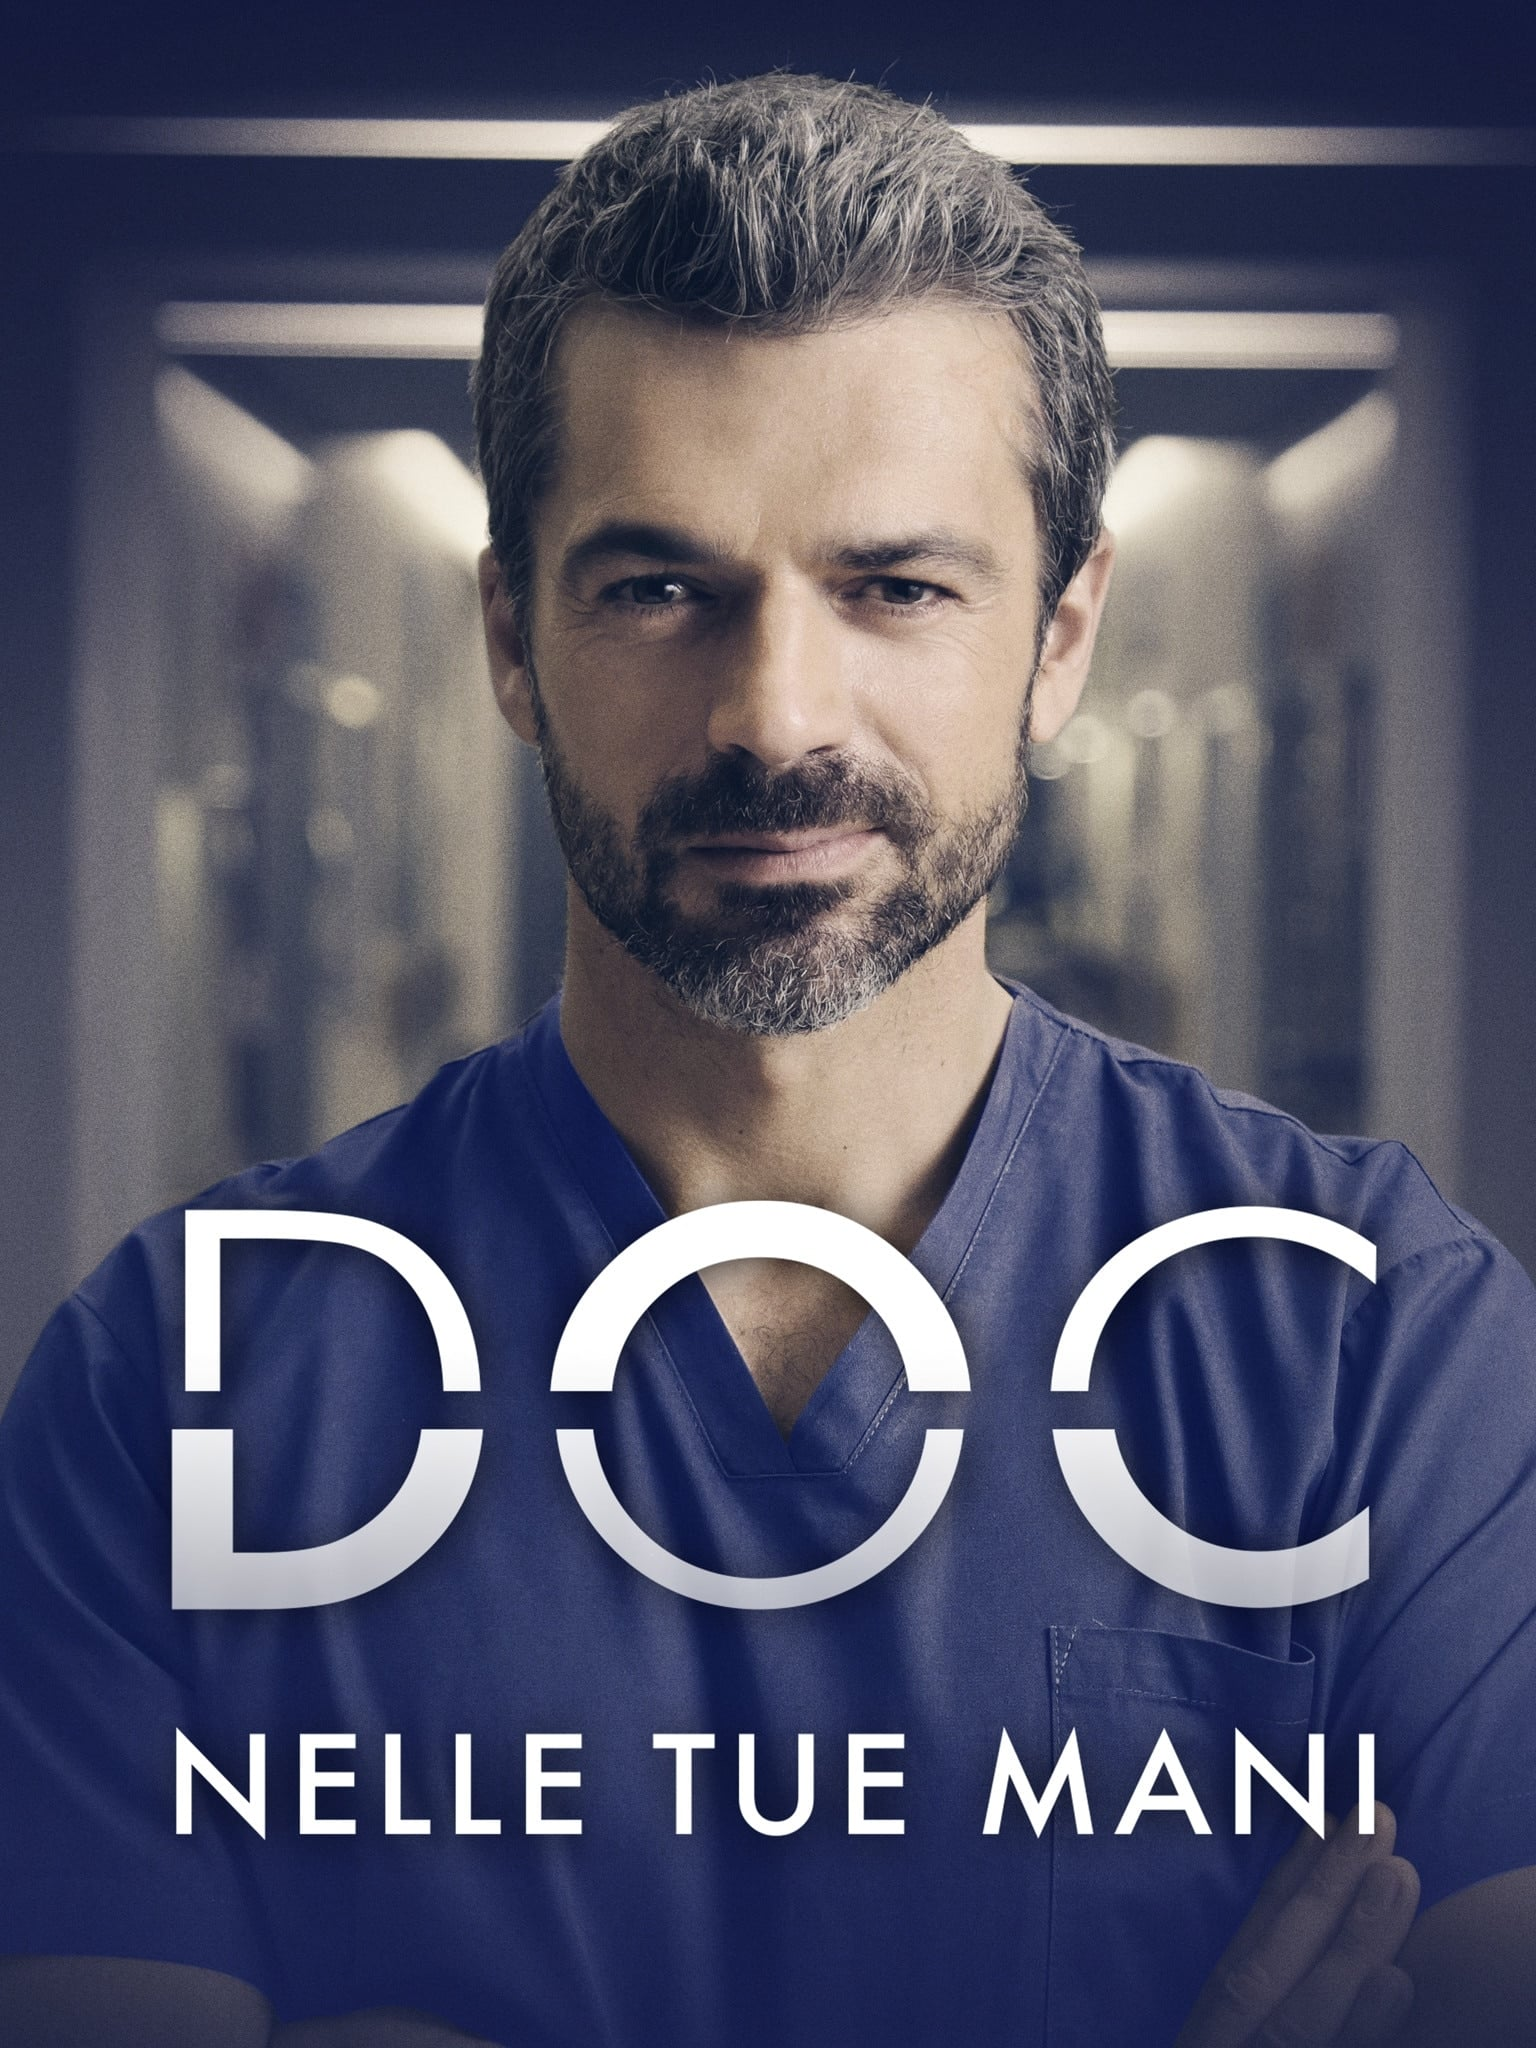 Doc – Nelle tue mani TV Shows About Loss